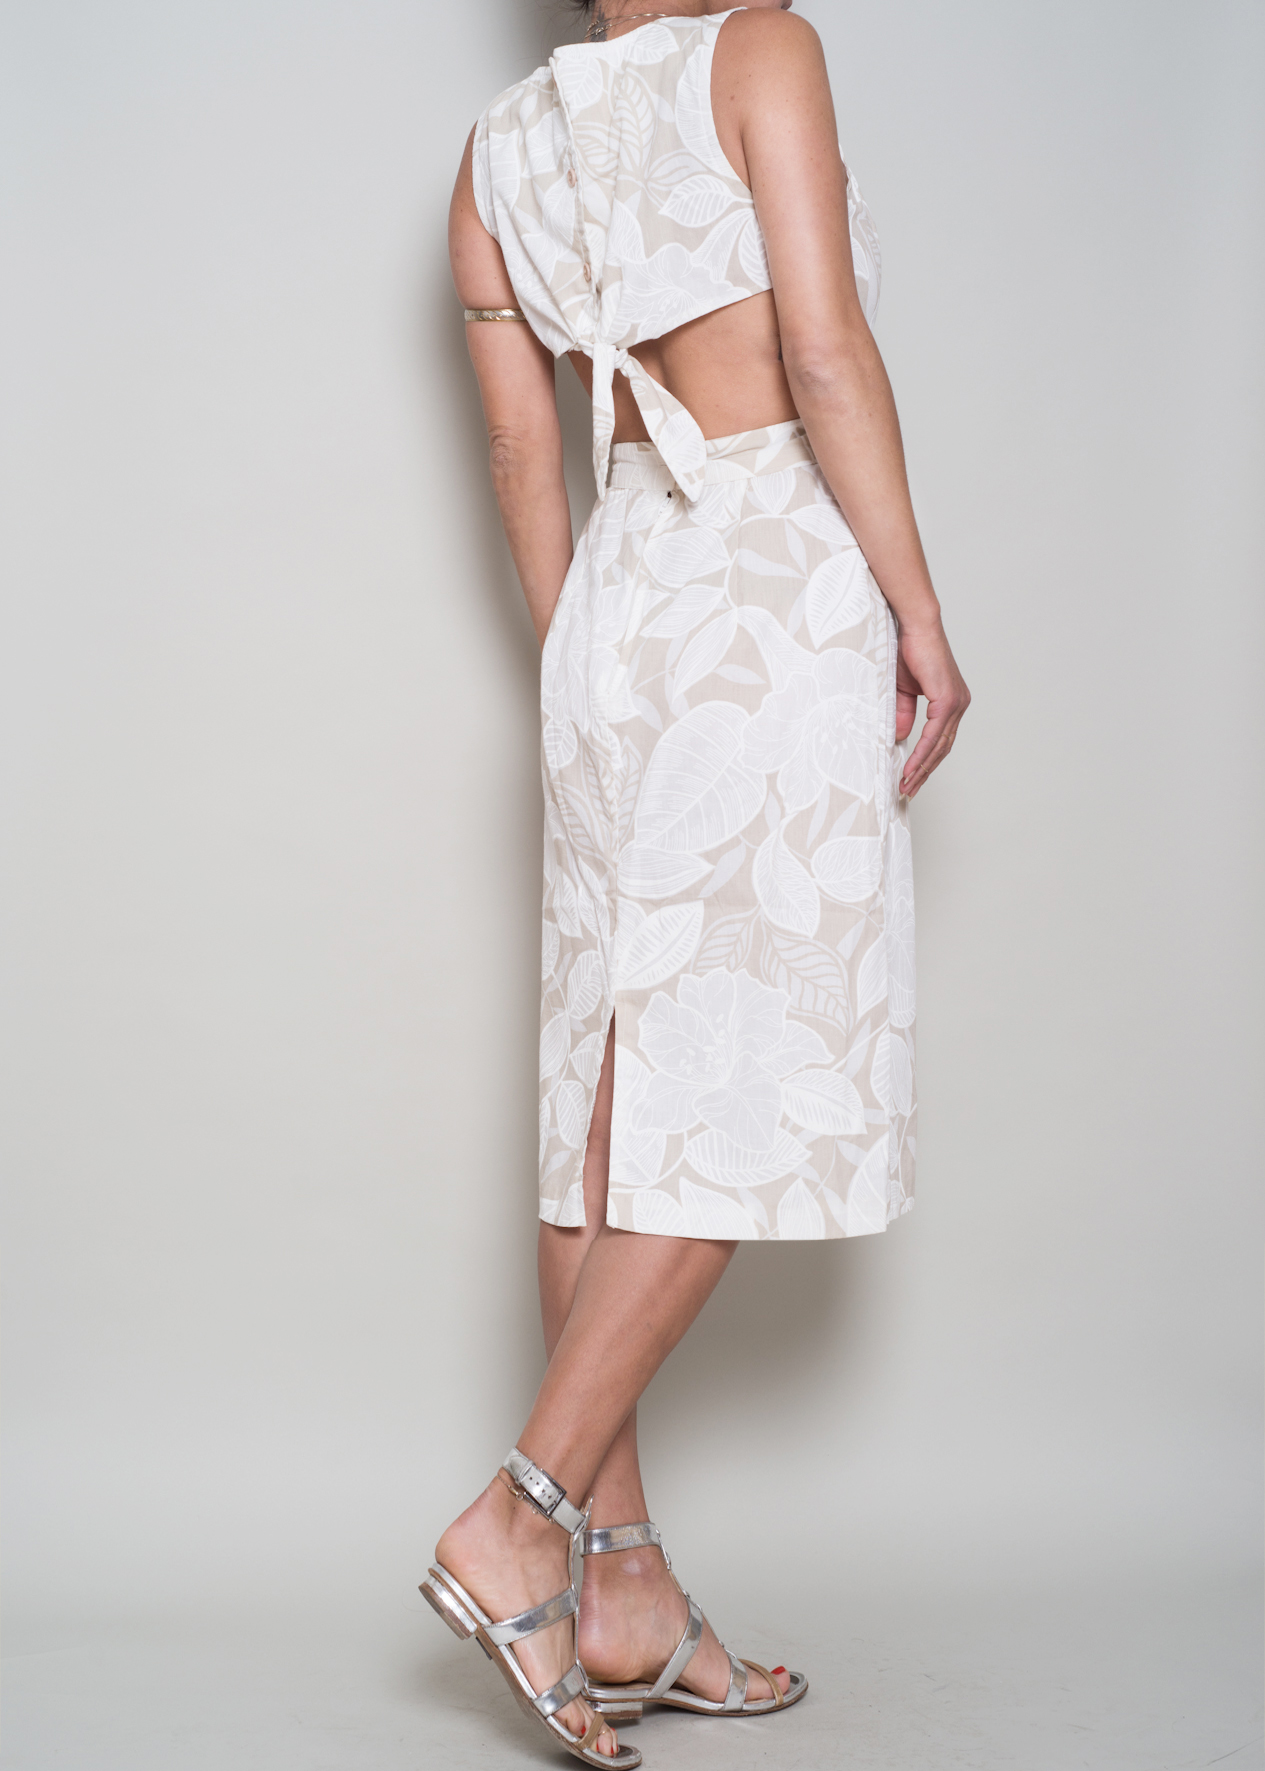 A_Part_of_the_Rest_Vintage_1990s_Neutral_Tropical_Backless_Dress_005.jpg